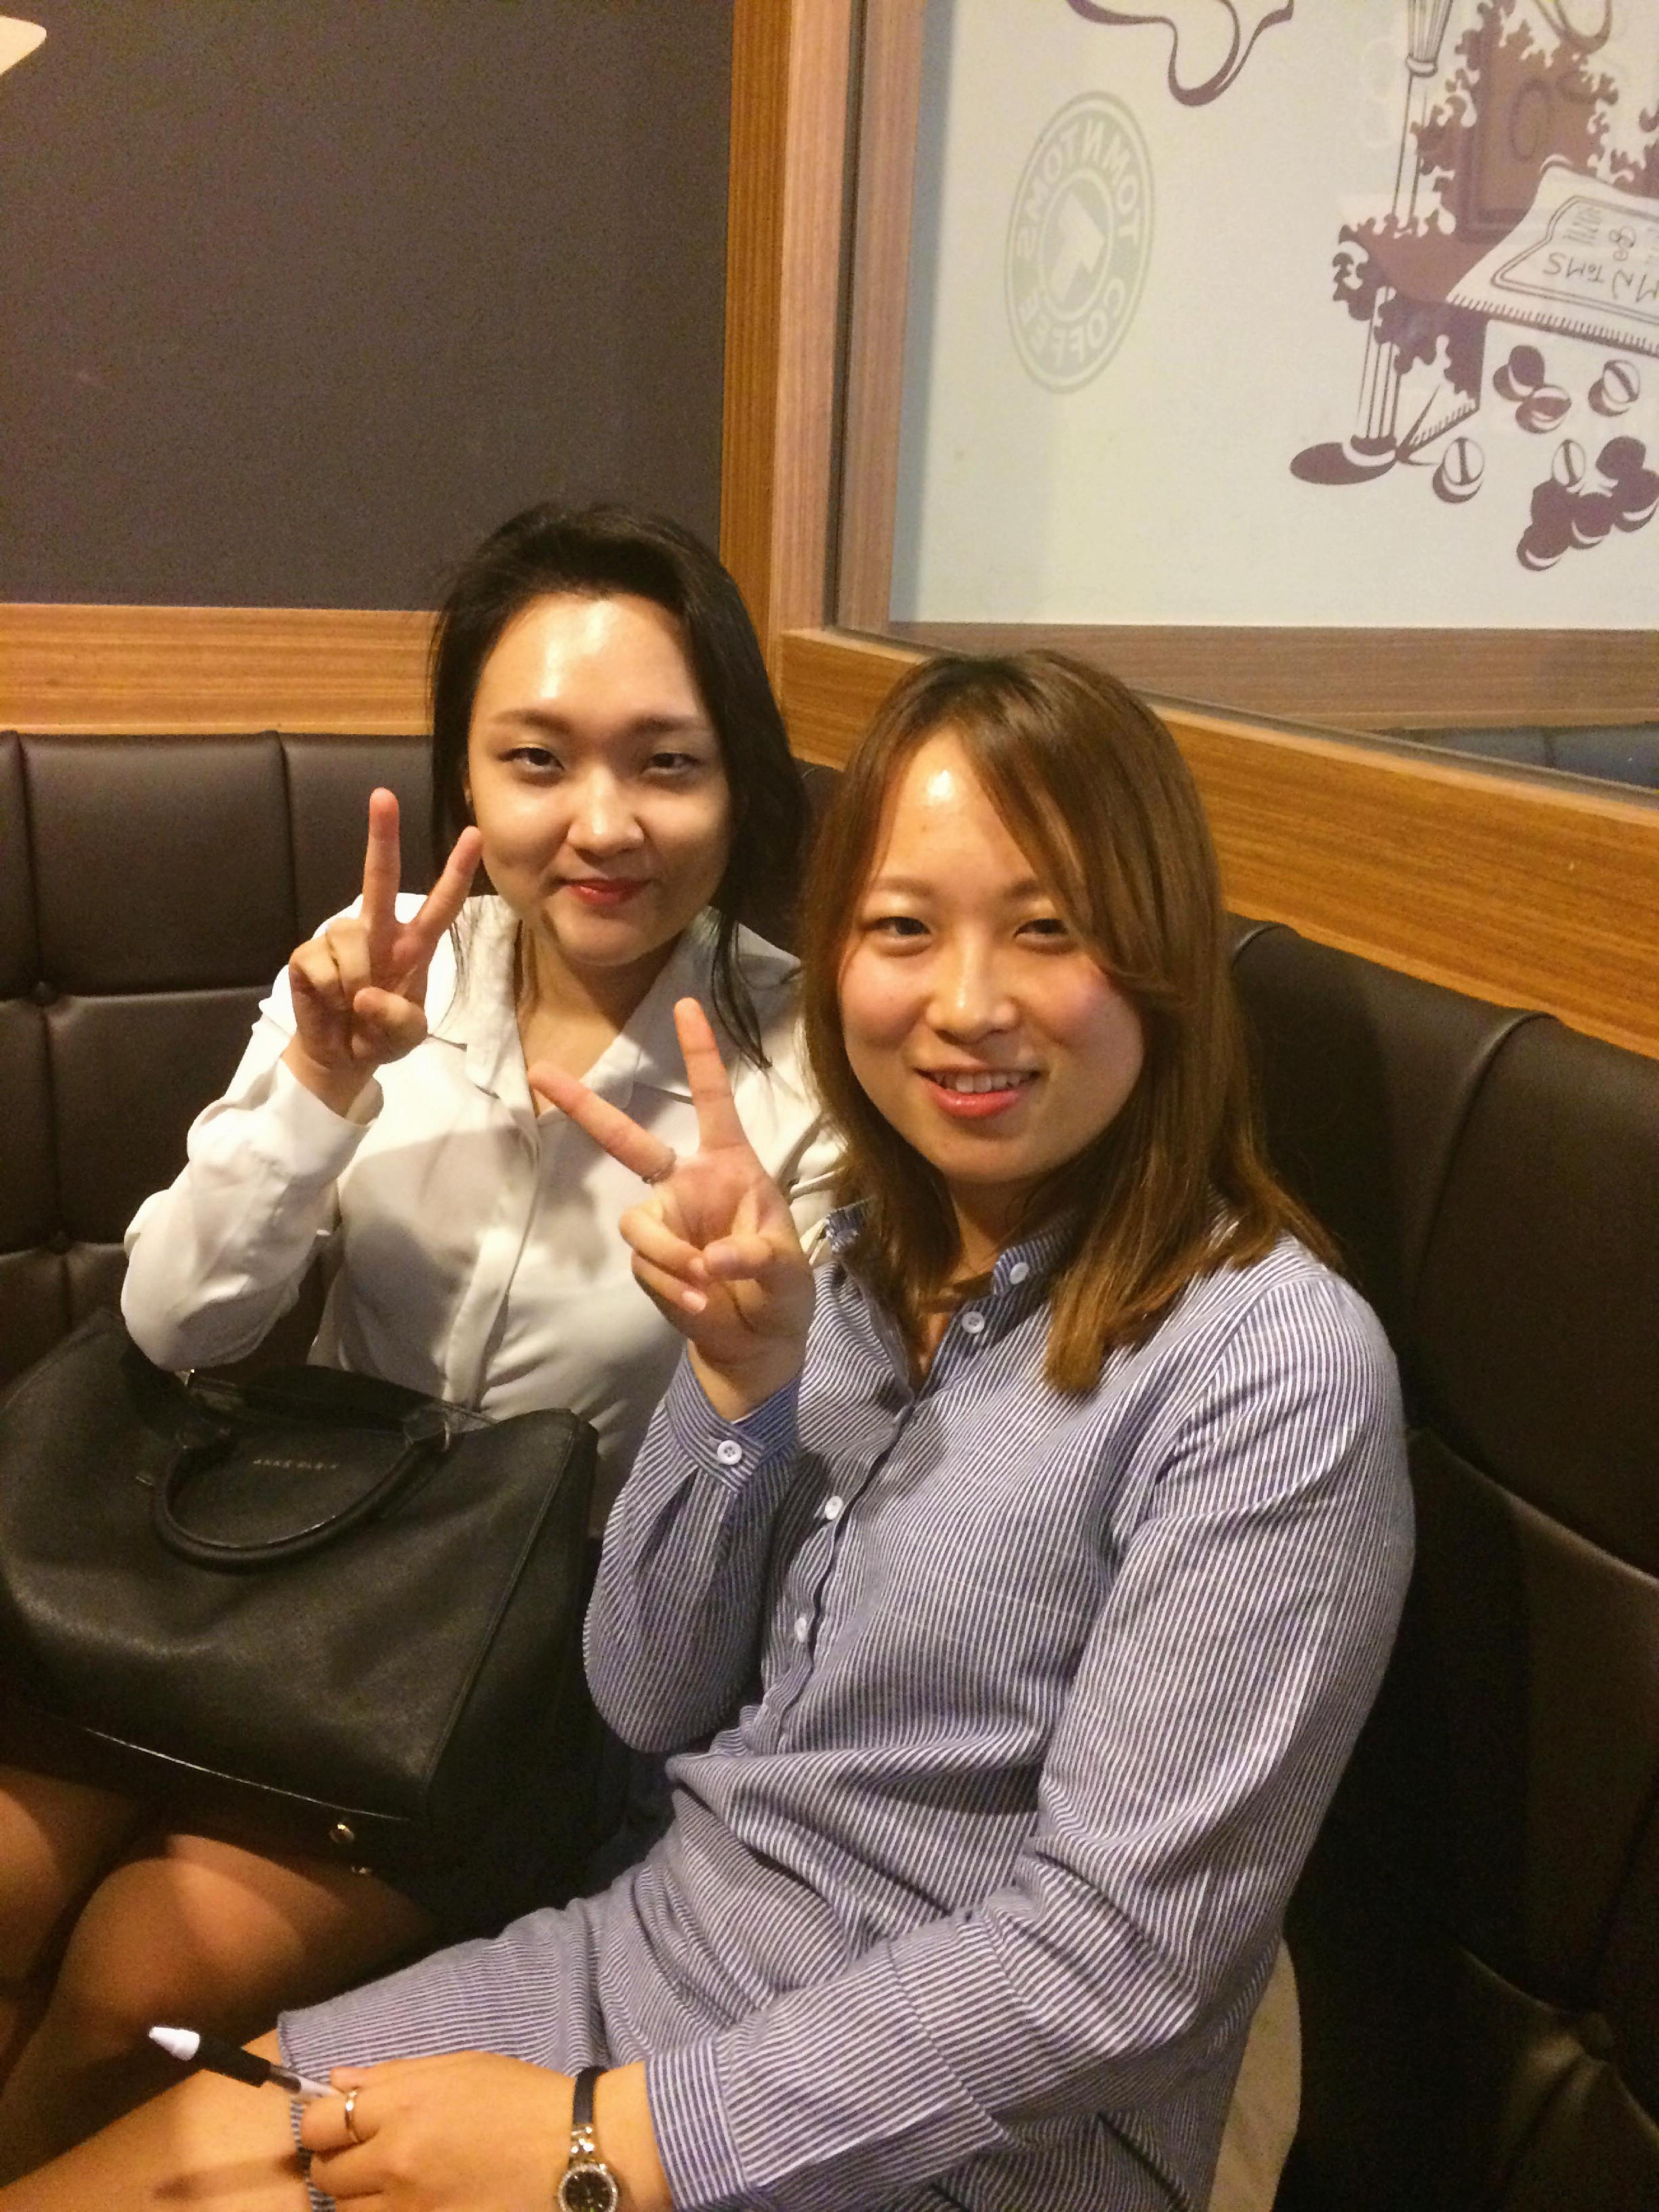 interview two korean girls peace sign